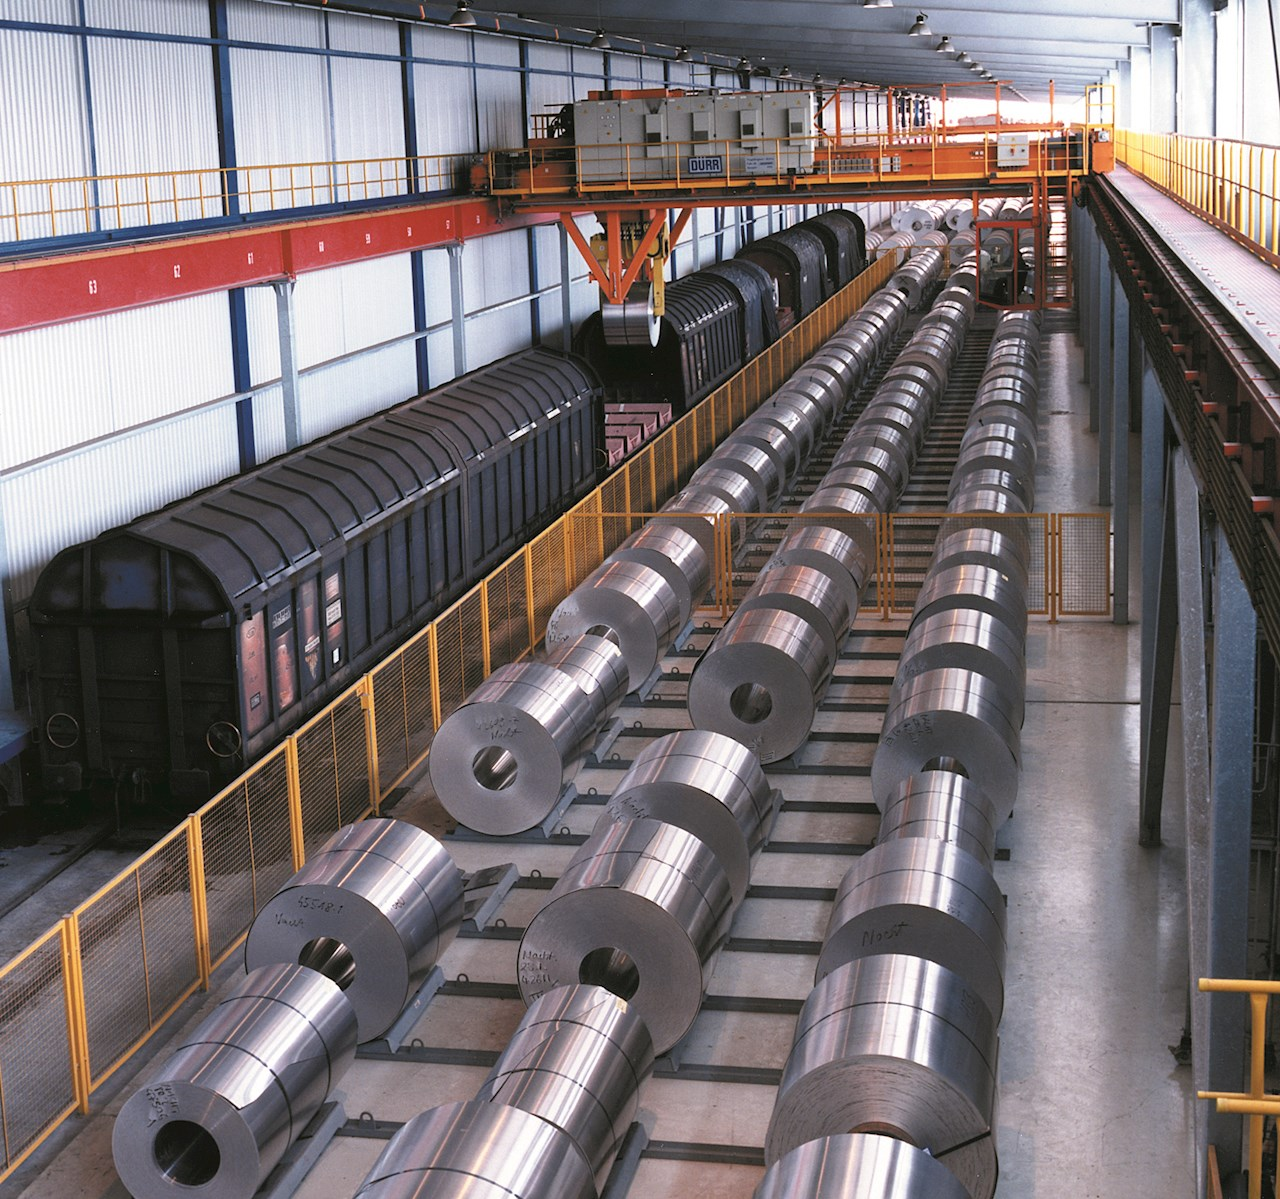 Processed steel coils ready for distribution